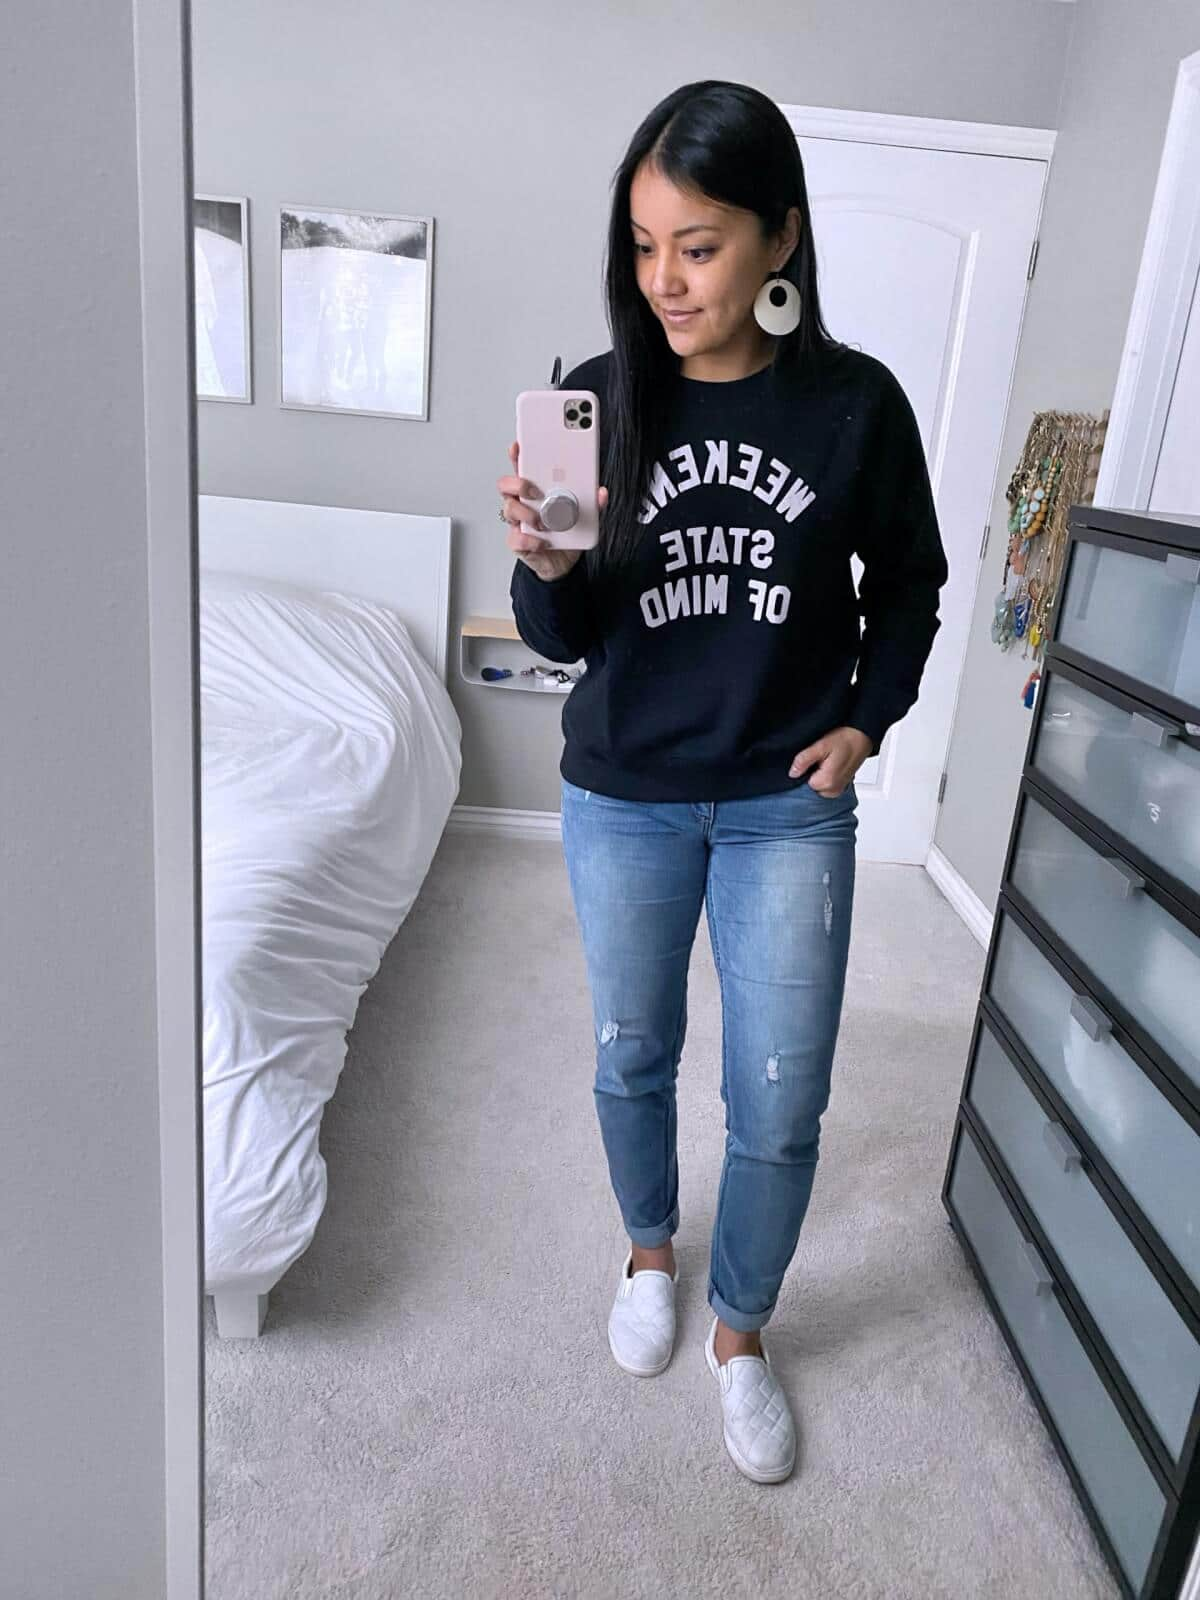 Old Navy Review: weekend state of mind black sweatshirt + distressed jeans + white earrings + white slip-on sneakers